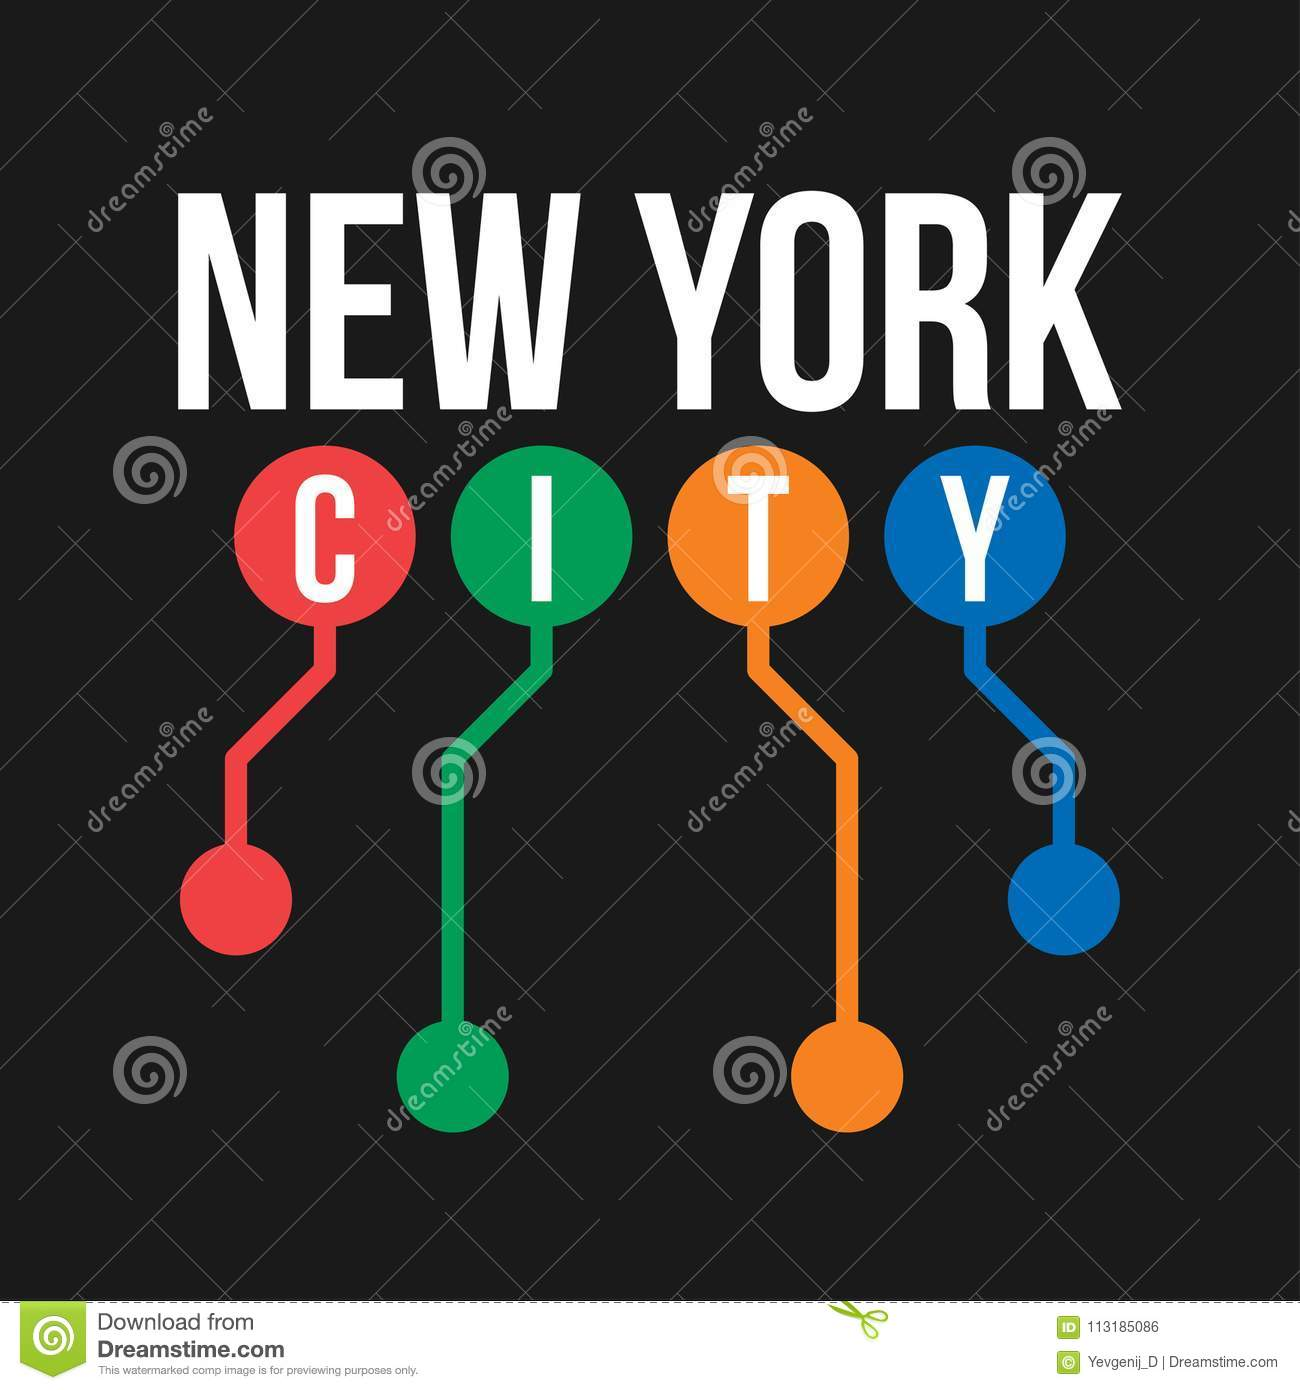 Ny Subway Map Background.T Shirt Design In The Concept Of New York City Subway Cool